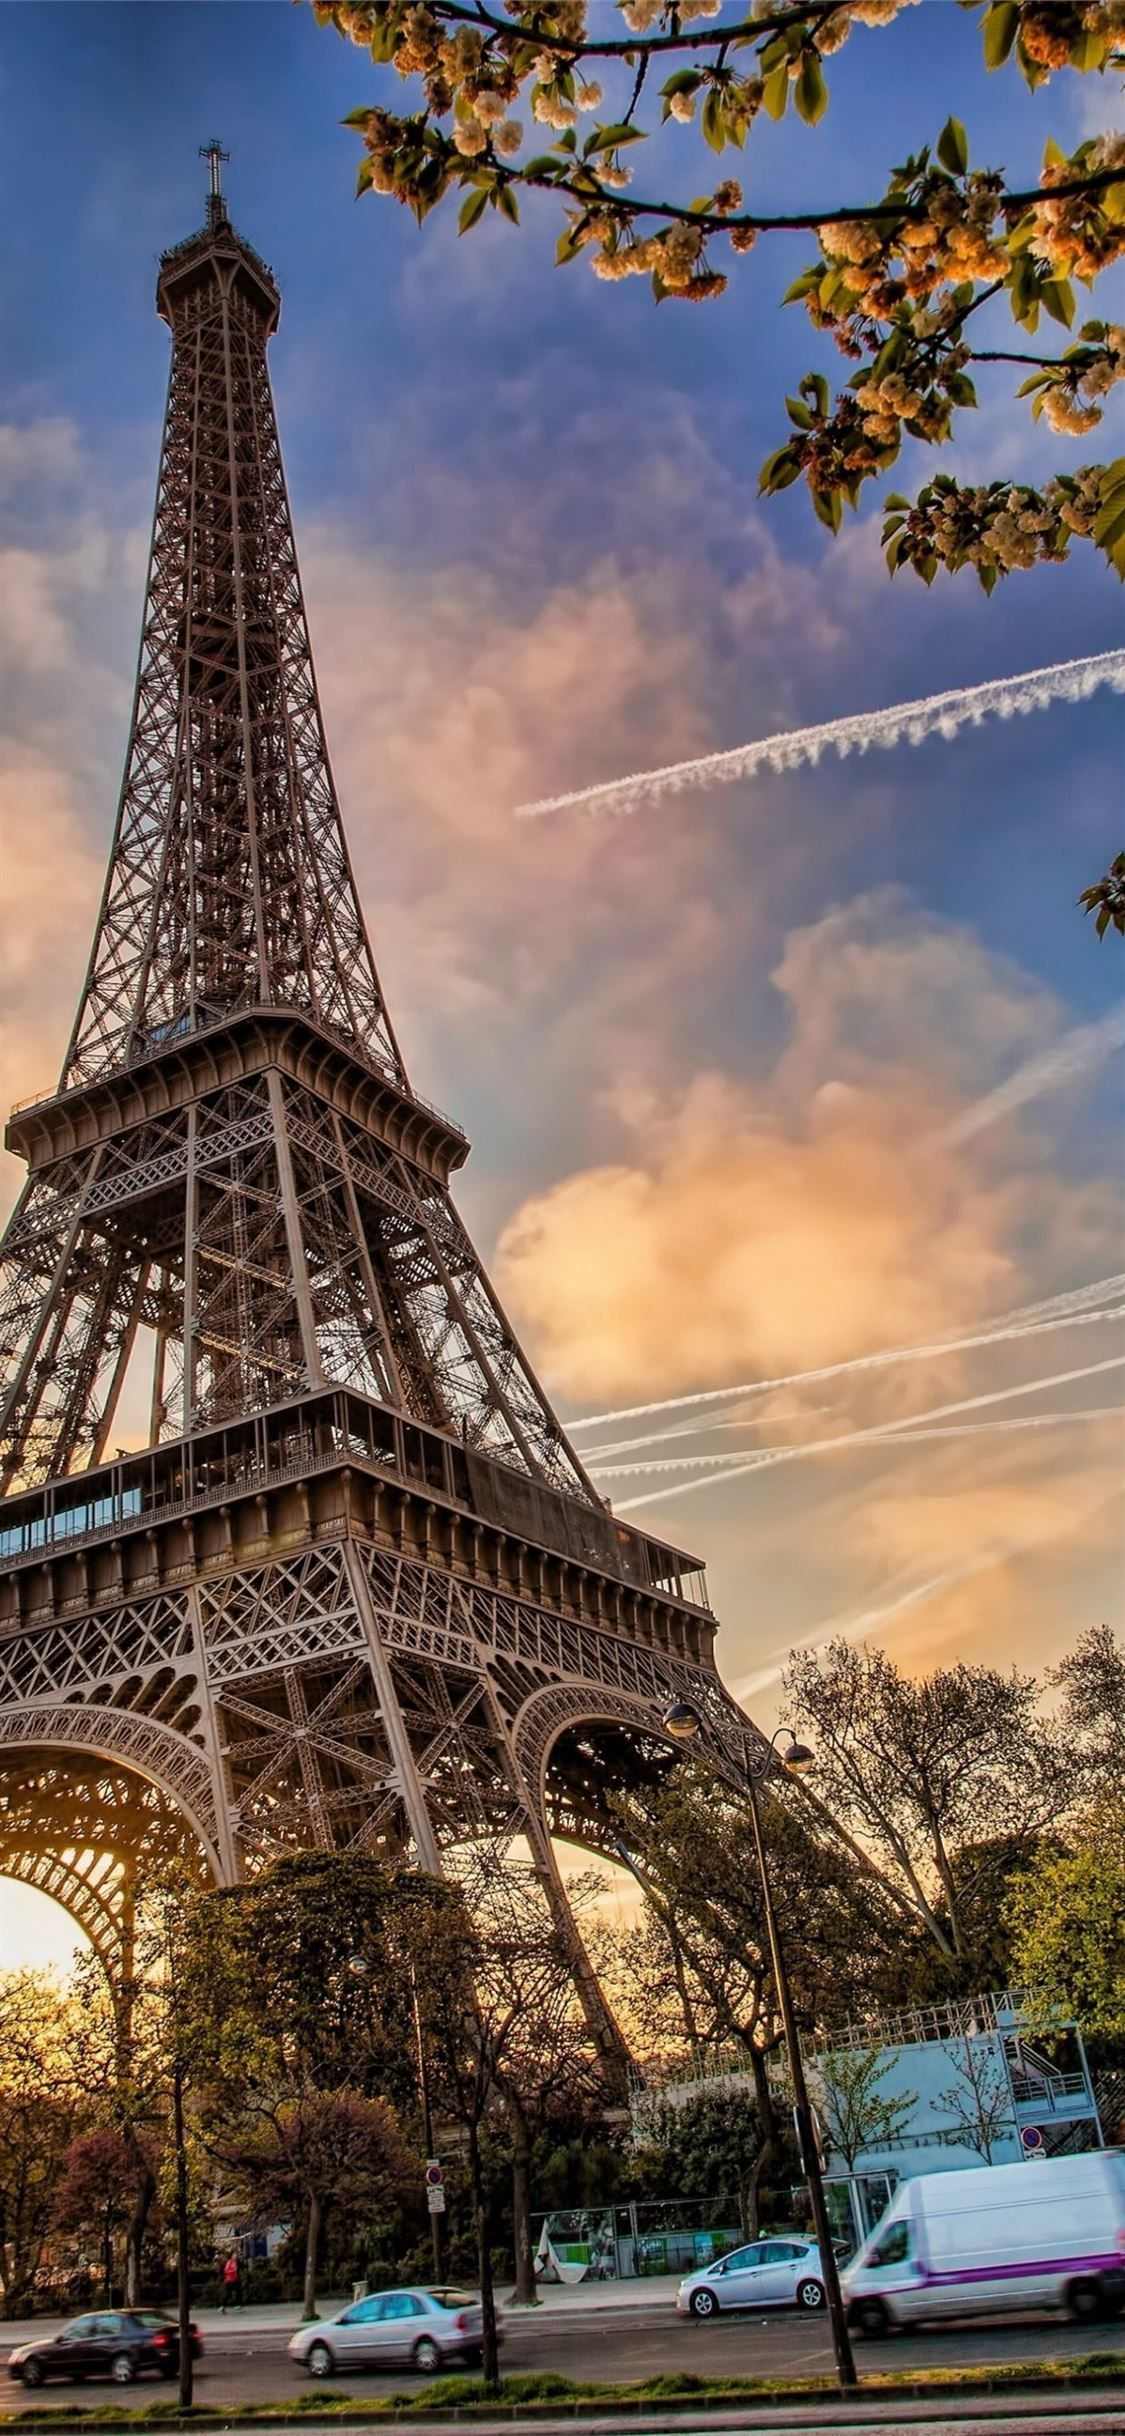 Free download the Paris wallpaper ,beaty your iphone .